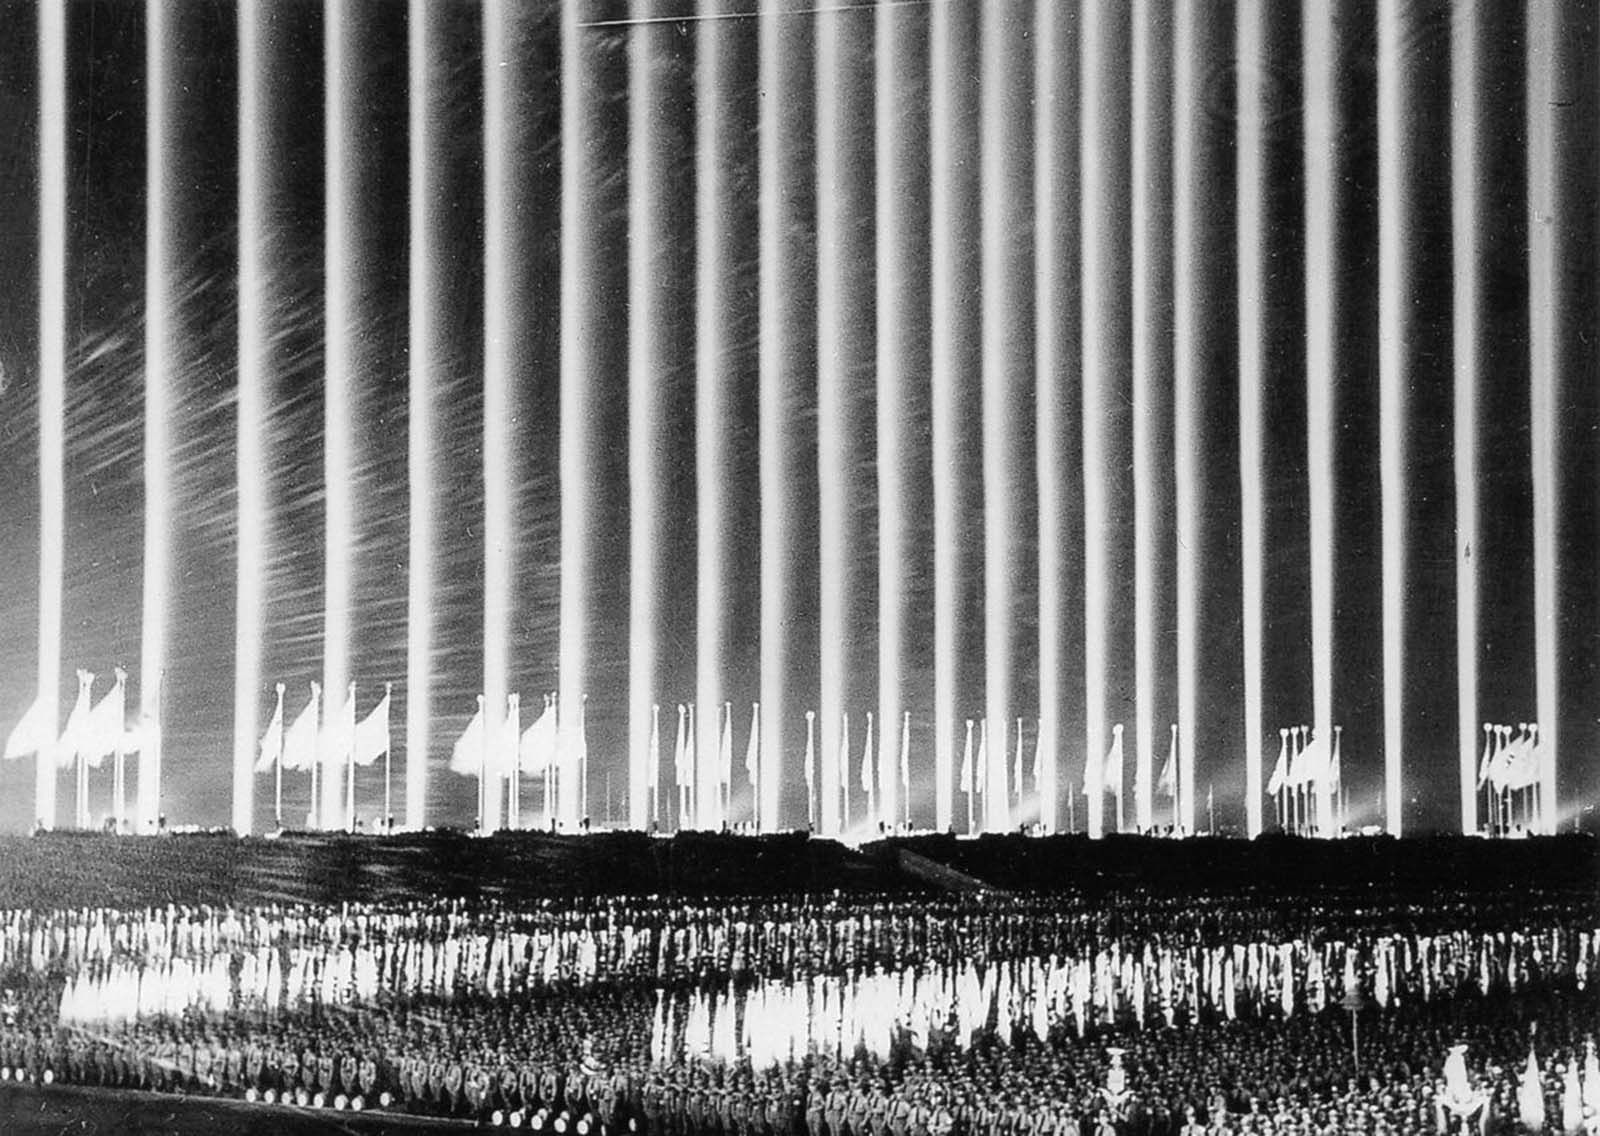 When the war began the lights were used for highlighting enemy airplanes so that the flak could easily shoot them down at night.